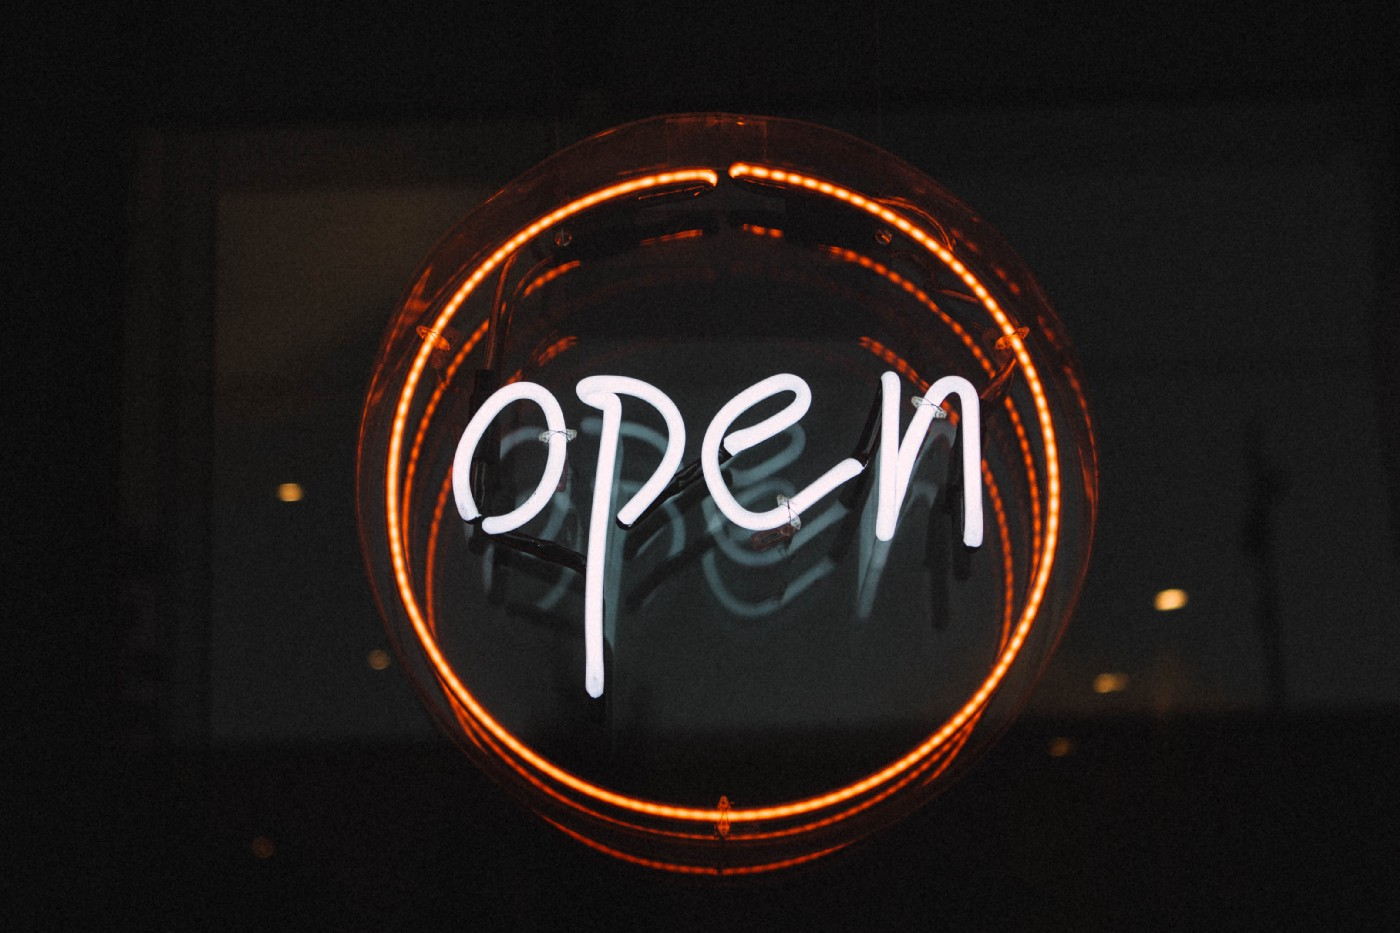 "Neon ""open"" sign with white text, surrounded by orange ring, on a black background. Image has dim reflection."